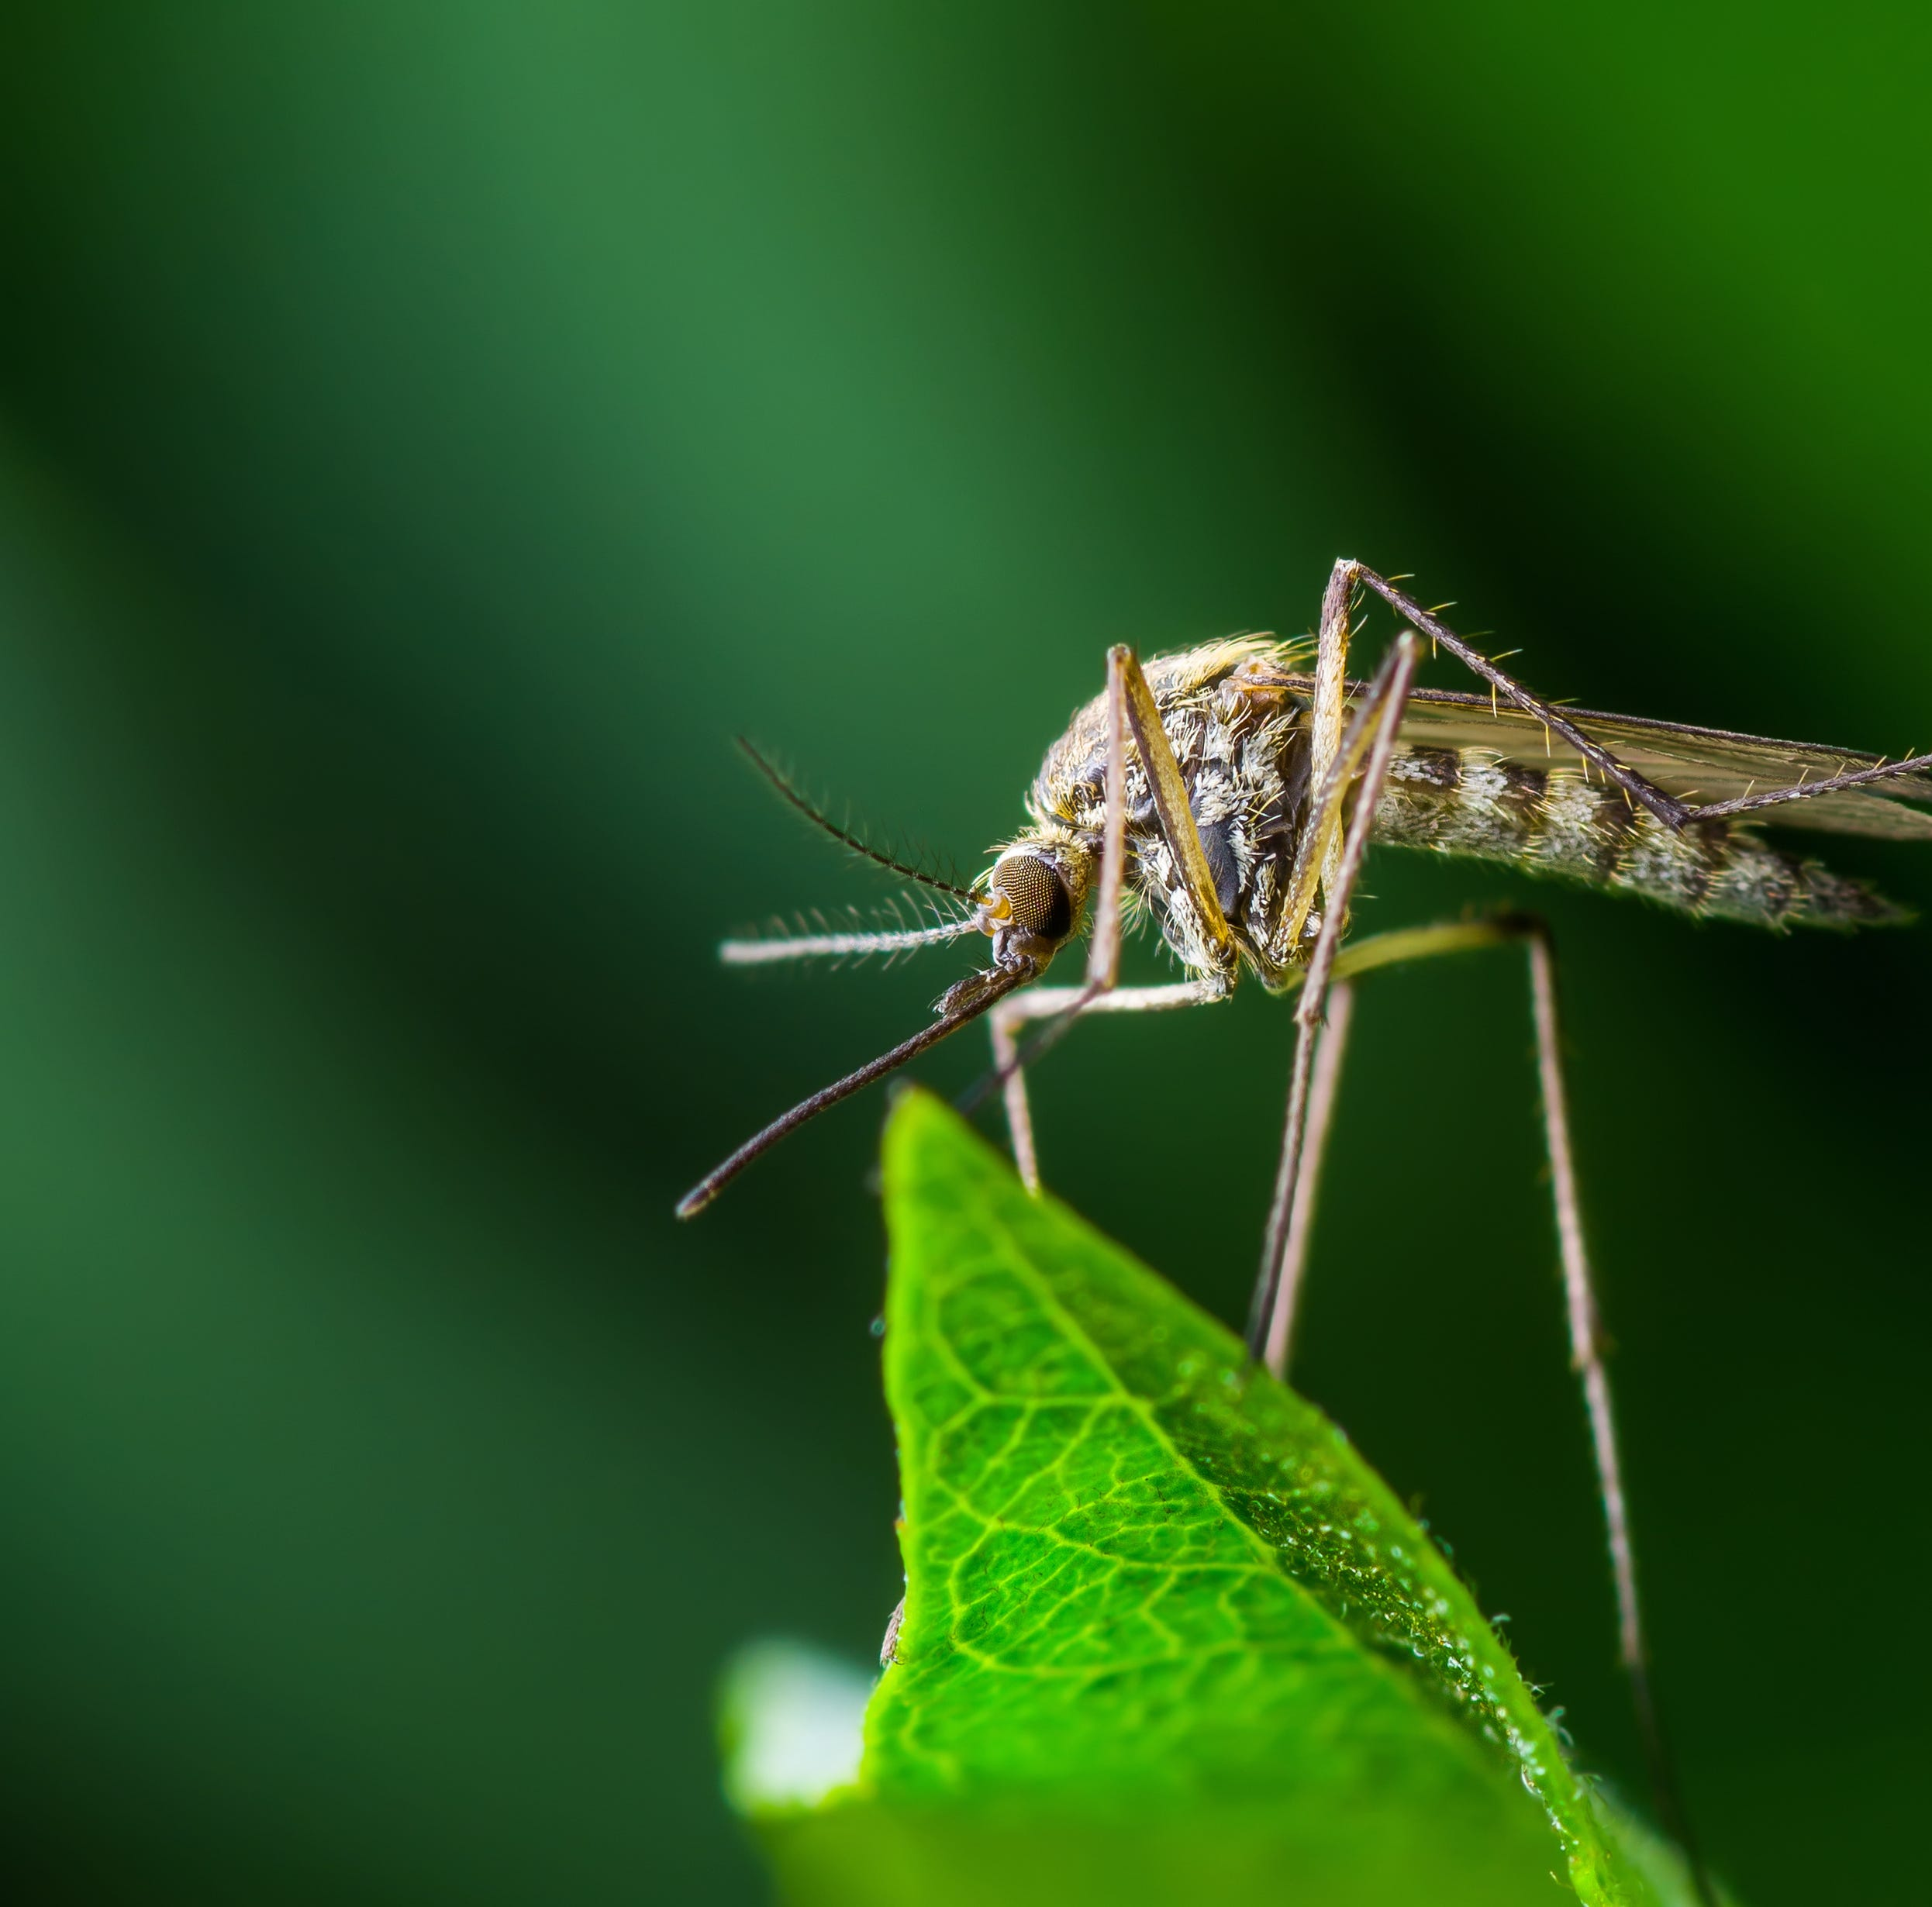 New research says microplastics eaten by mosquitoes can easily harm birds, bats and could even contaminate human food.